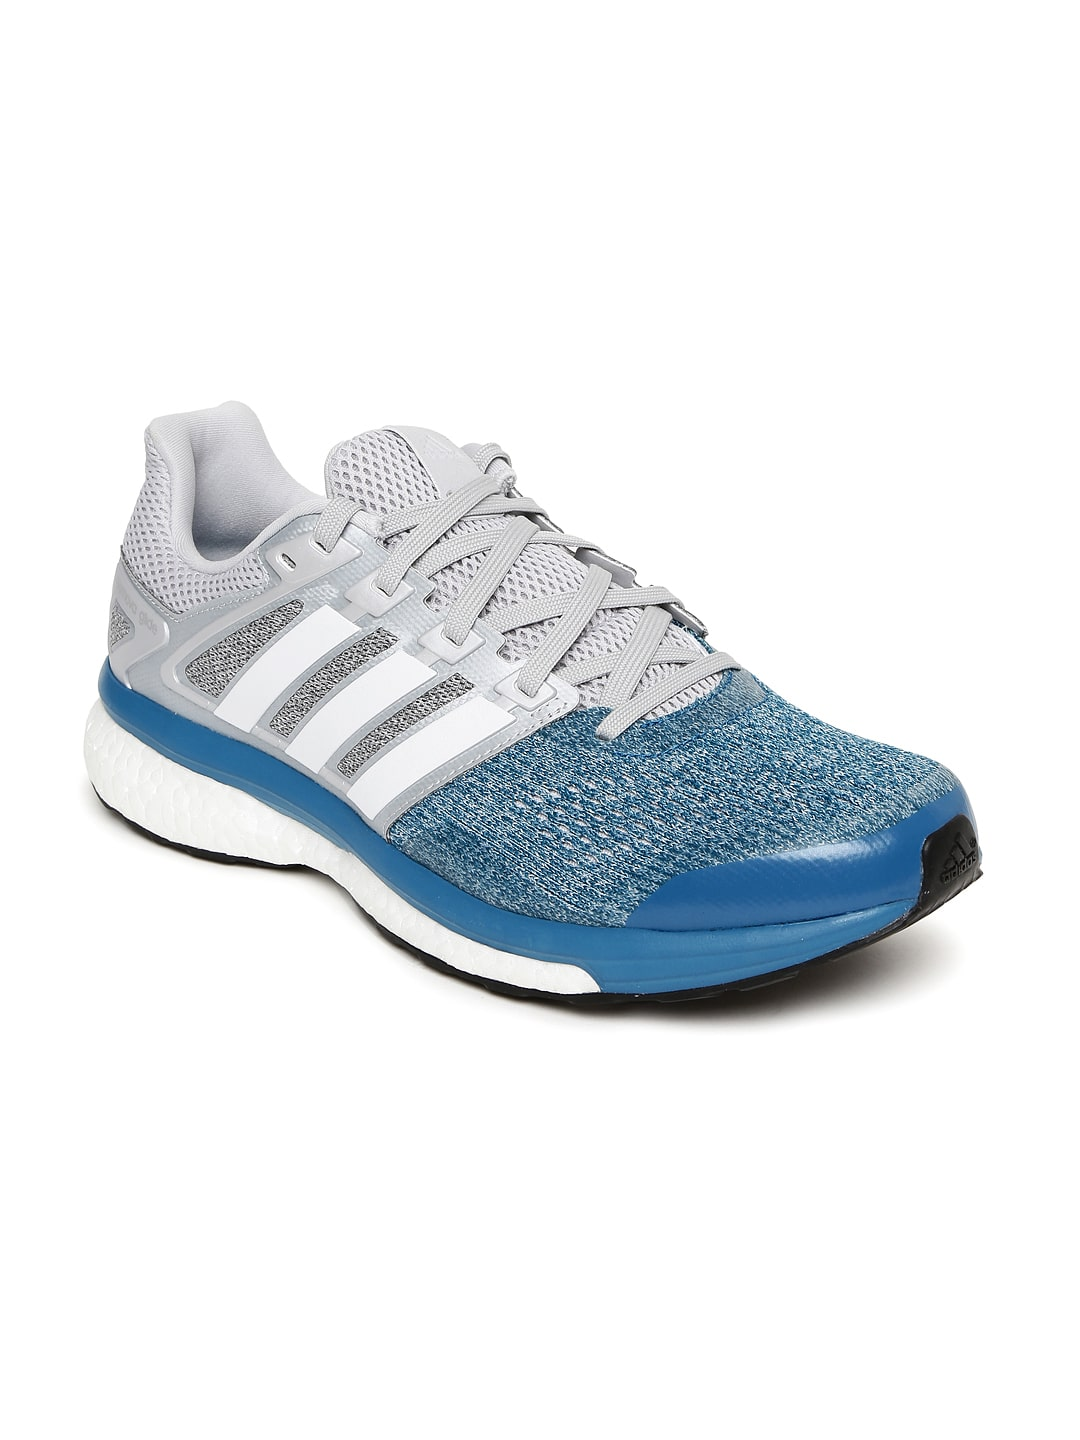 ff8a224c1f7 Adidas bb4126 Men Blue And Grey Supernova Glide 8 Running Shoes- Price in  India